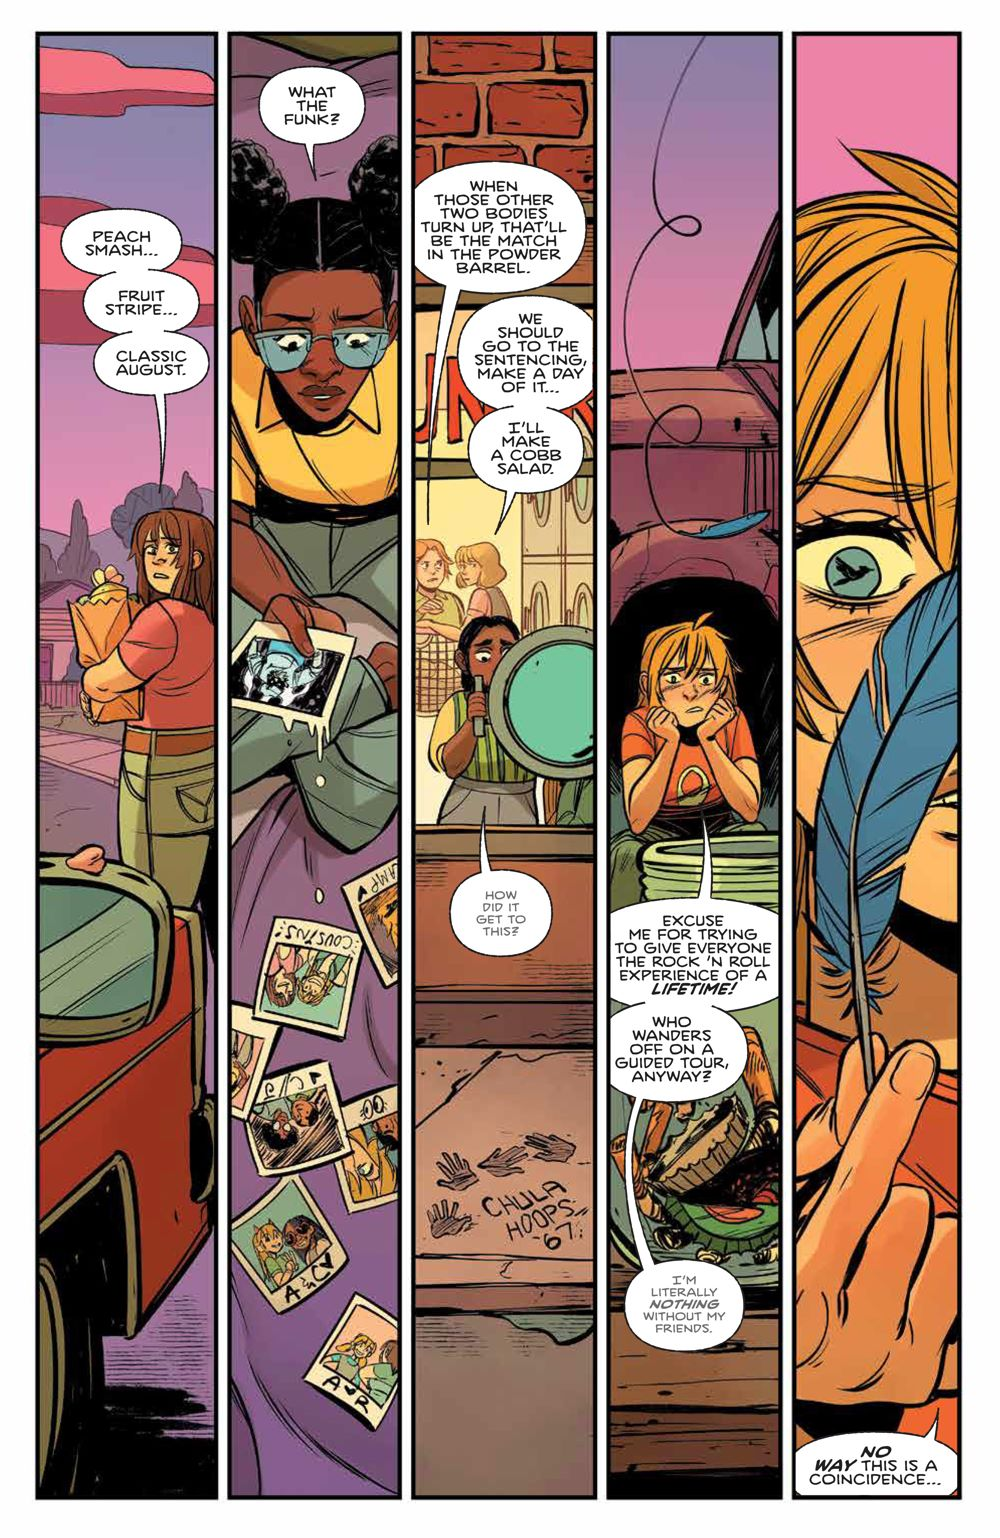 ProctorValleyRoad_005_PRESS_6 ComicList Previews: PROCTOR VALLEY ROAD #5 (OF 5)